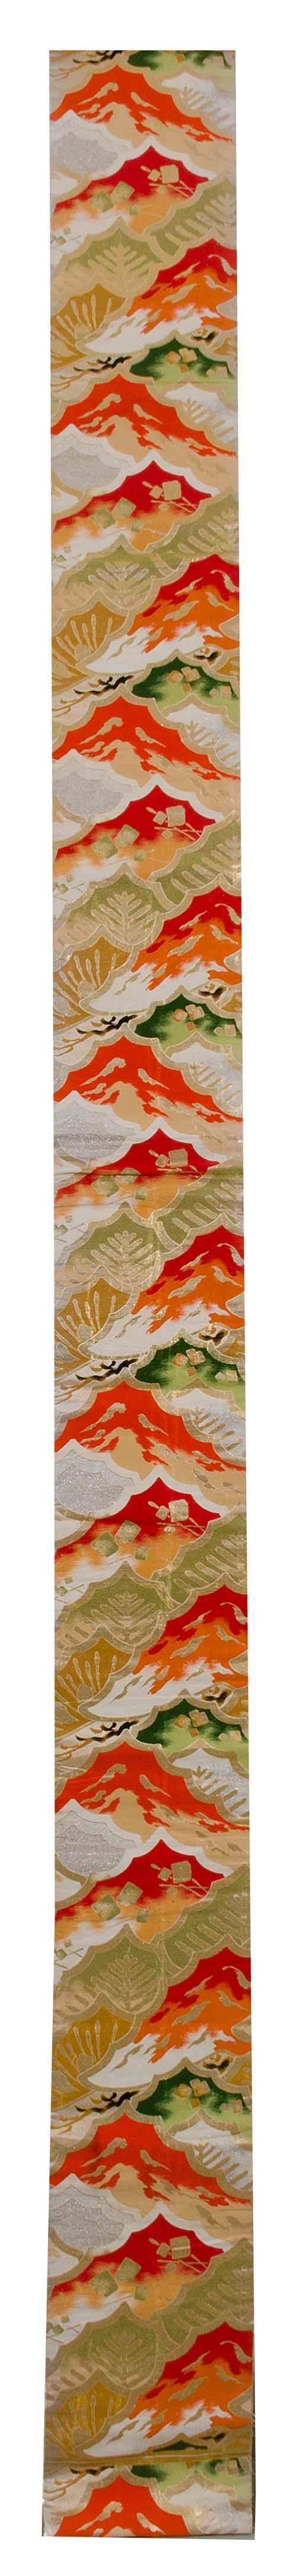 SILK BROCADE OBI In a silver, orange, and lime green paulownia design.